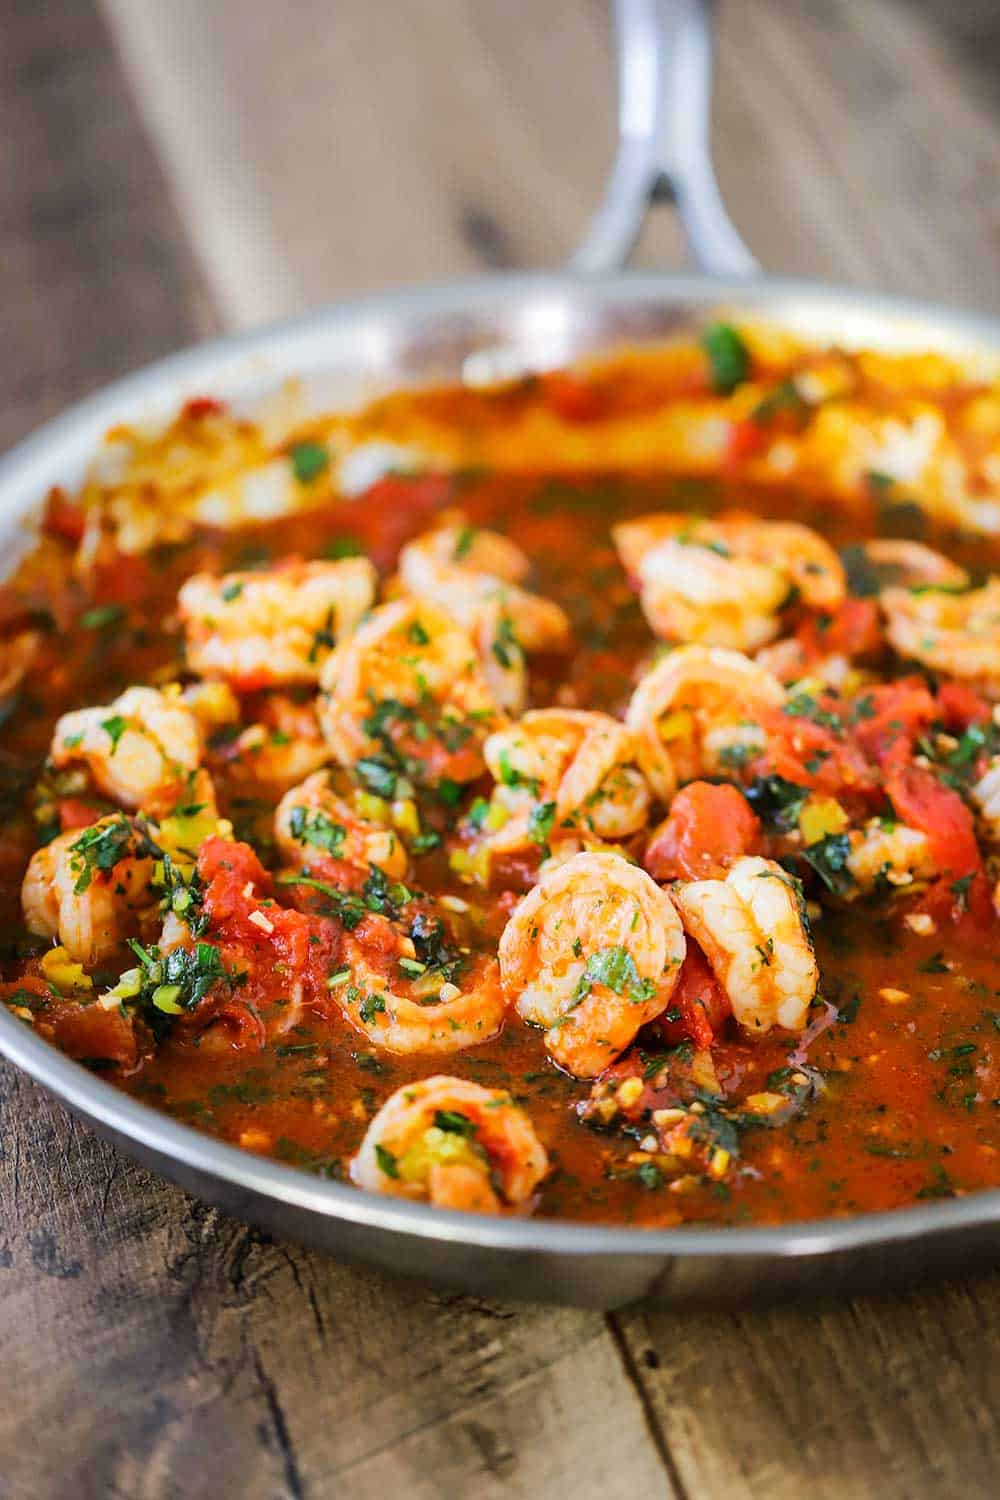 A large silver skillet filled with cooked shrimp fra diavolo sitting on wooden planks.